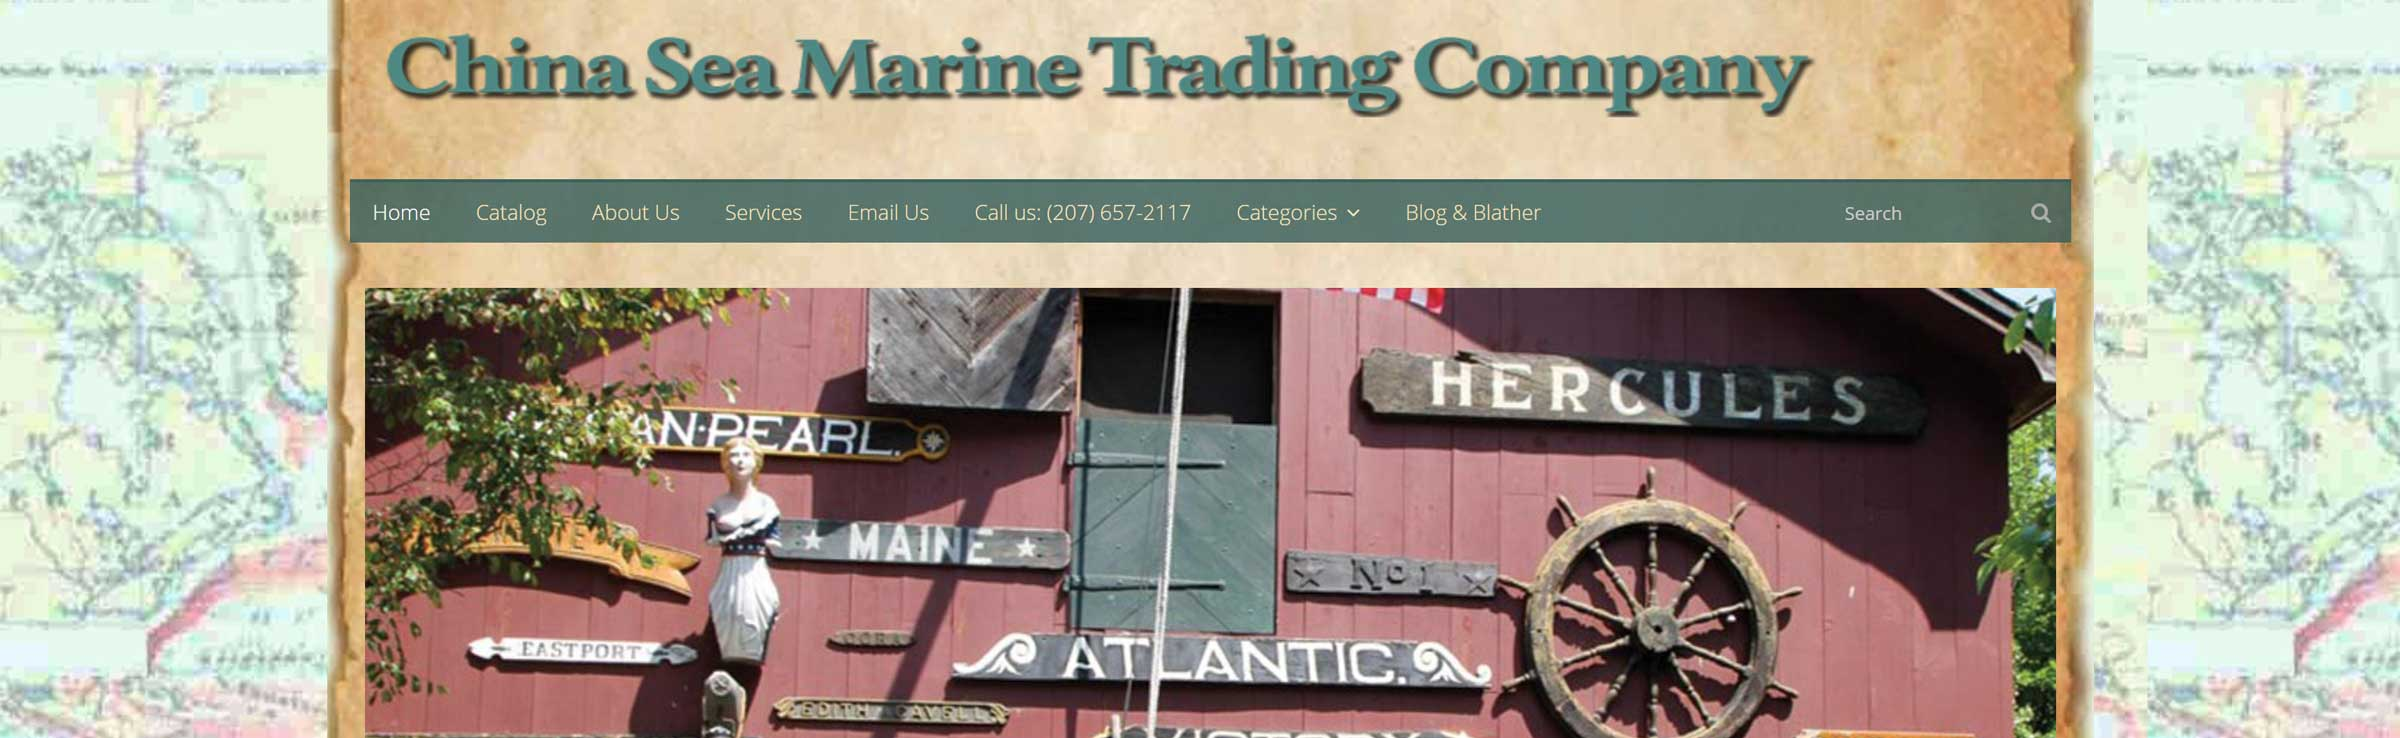 China Sea Trading Company banner